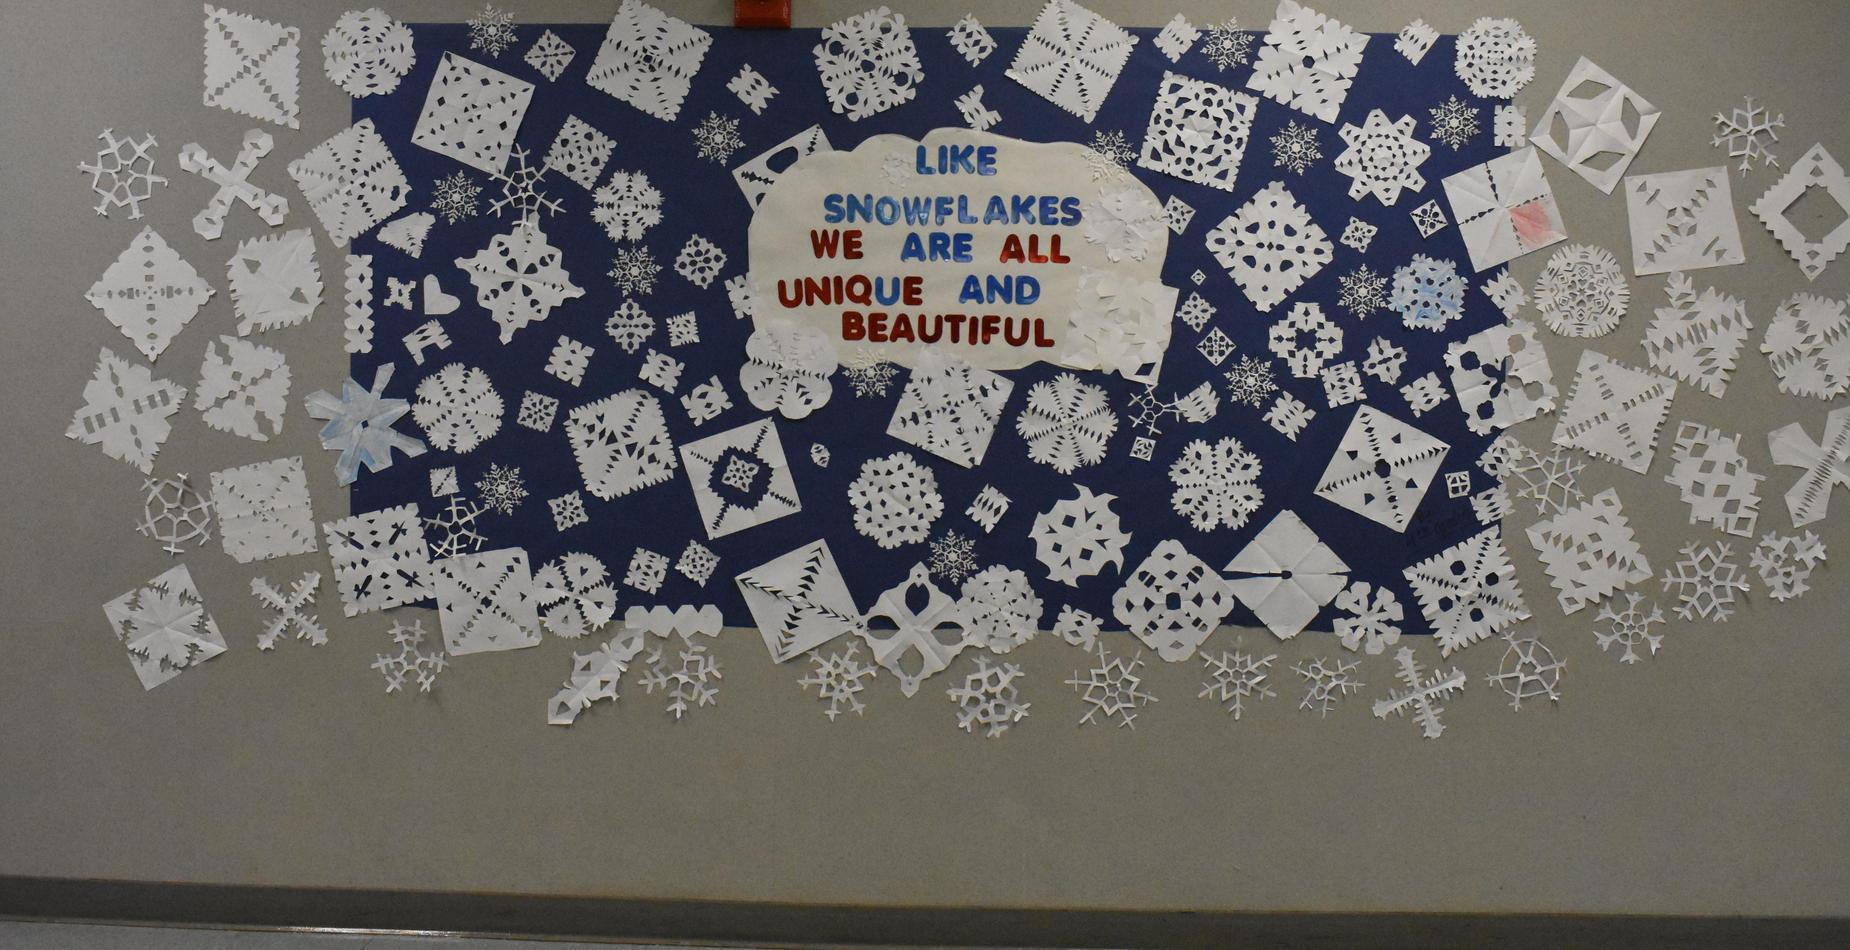 A collage of snowflakes with the words